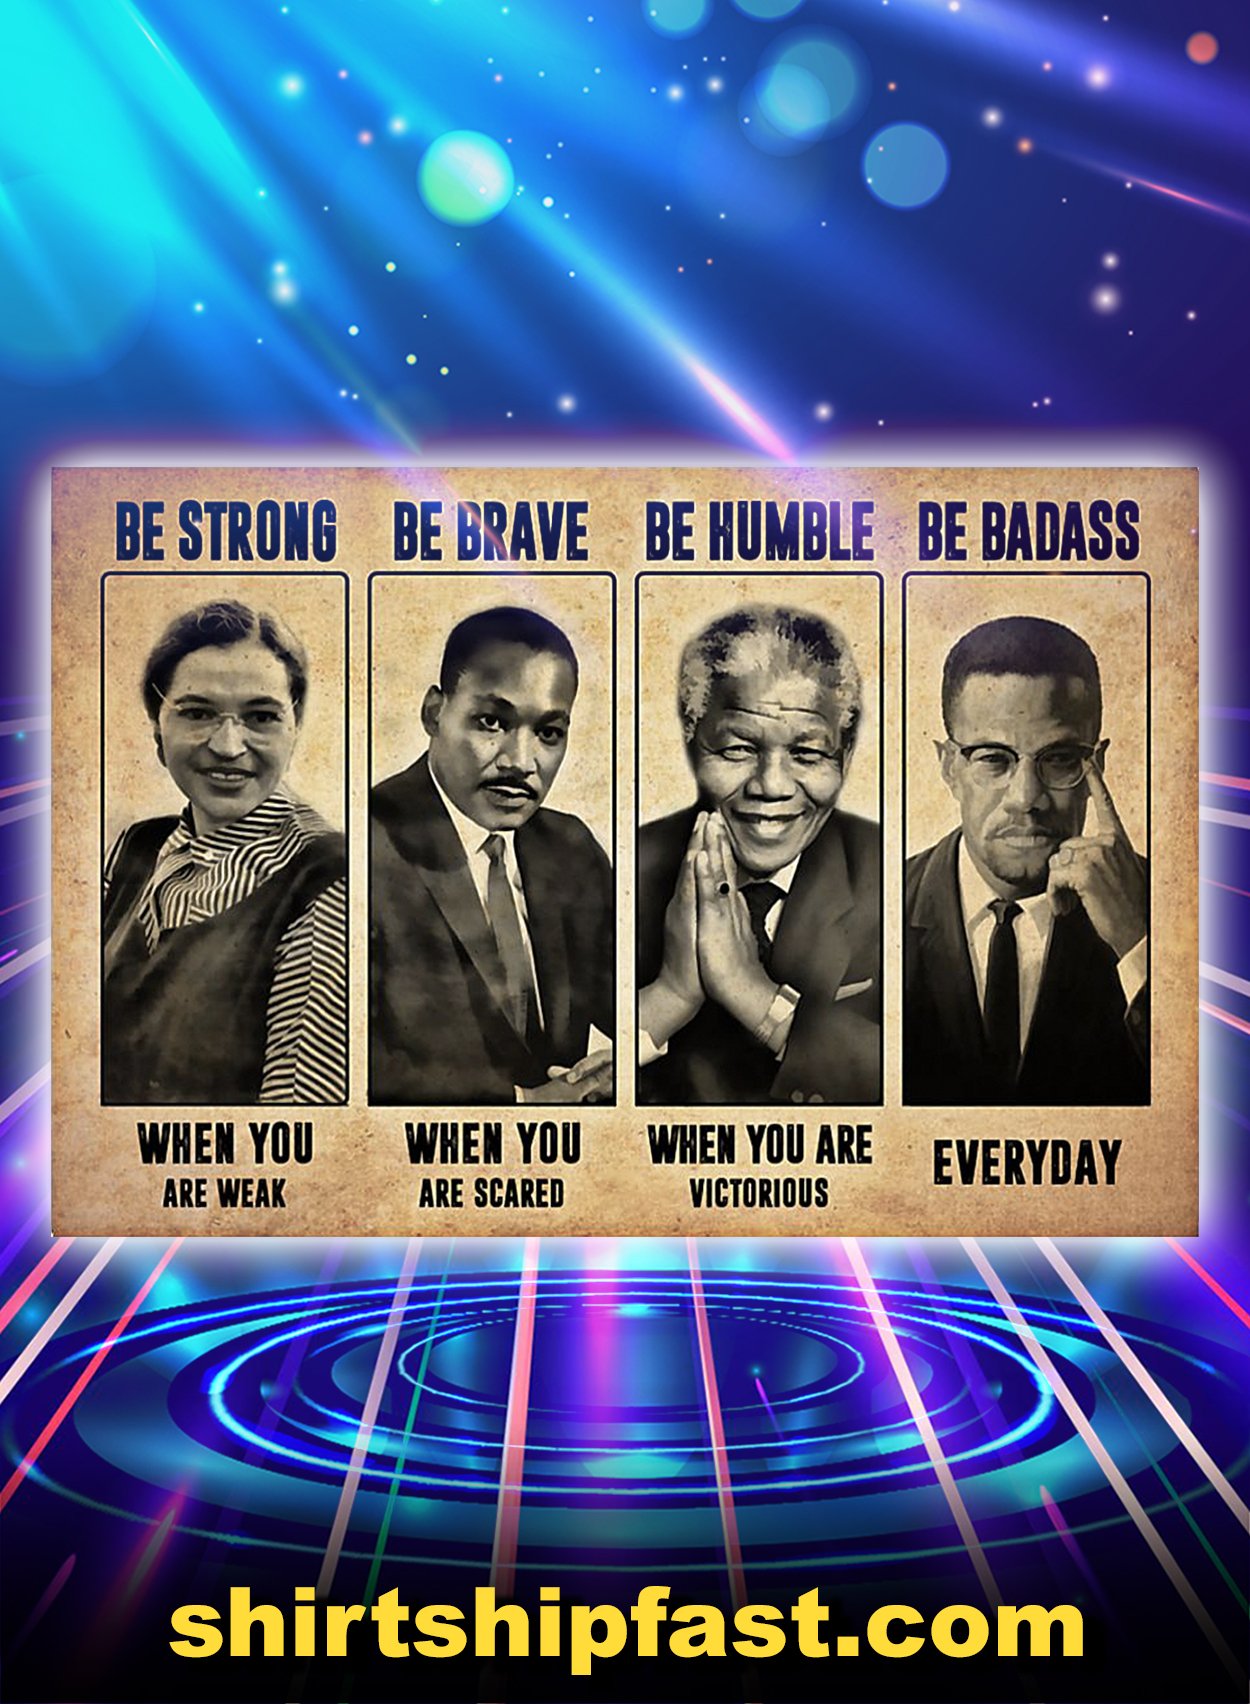 Rosa Parks Martin Luther King Malcolm Nelson Mandela famous people be strong poster - A2